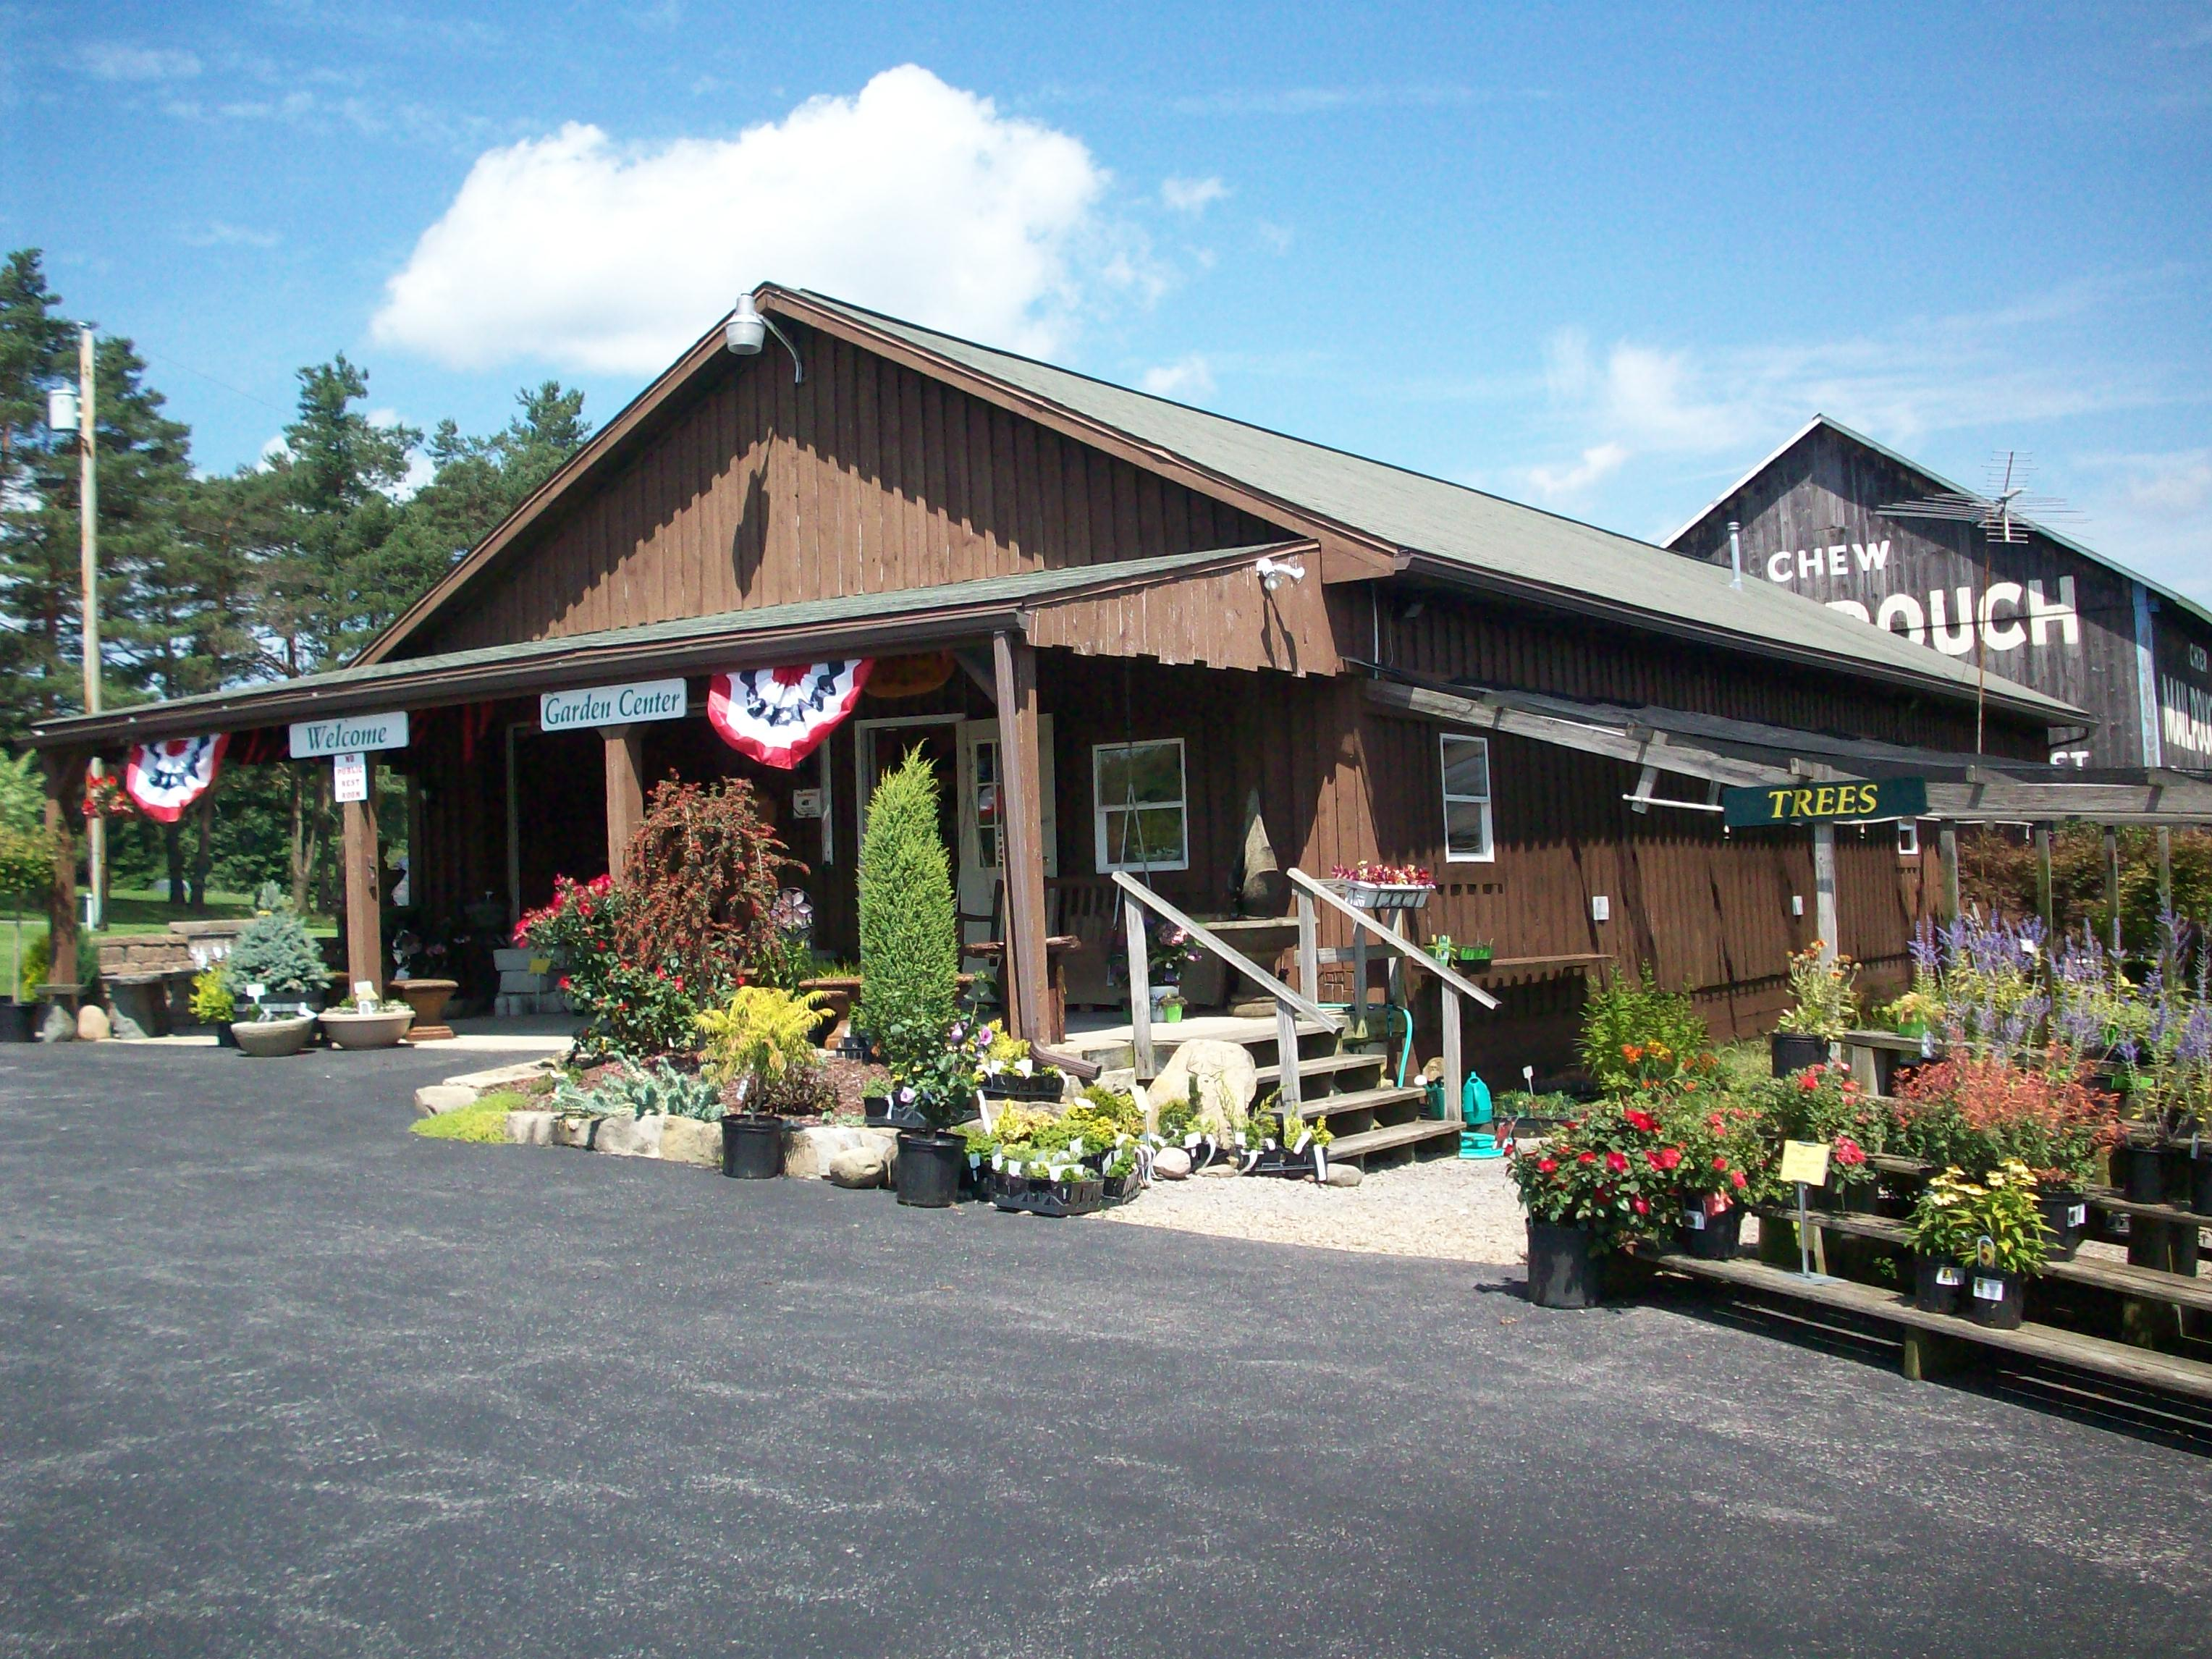 Garden Center in Clarion County, Pa.